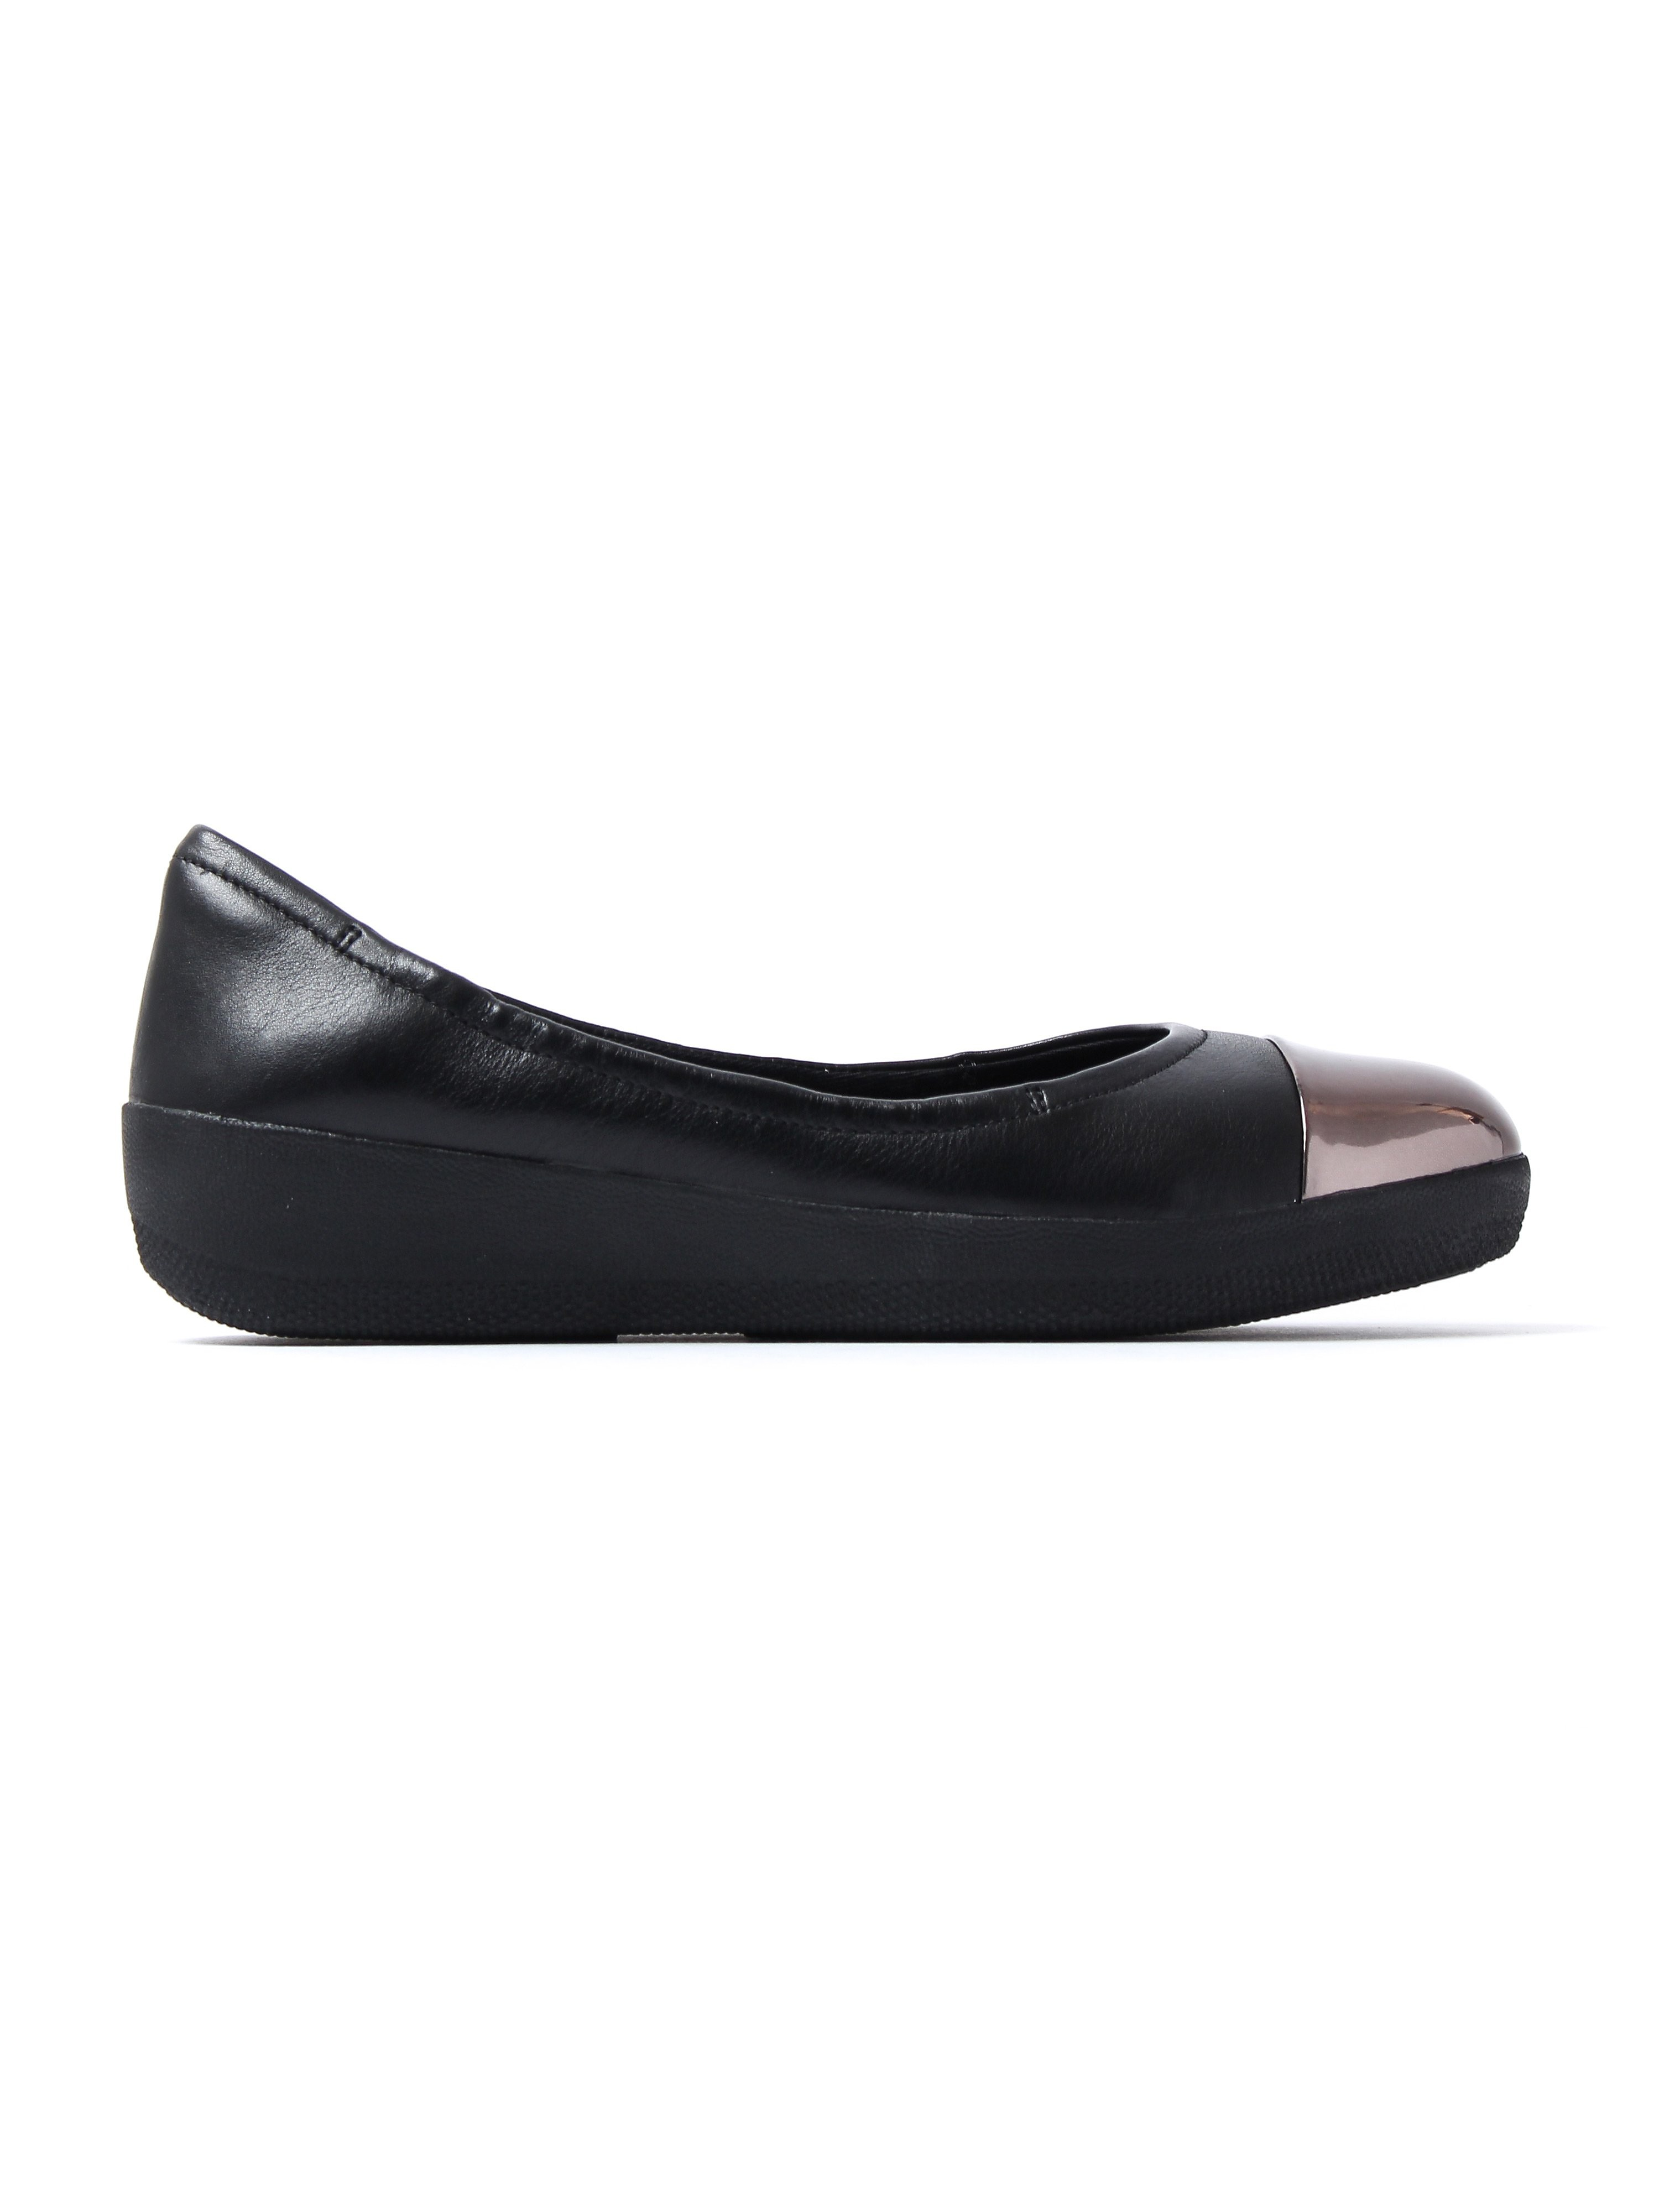 FitFlop Women's Superbendy Mirror-Toe Ballerinas - Black Leather